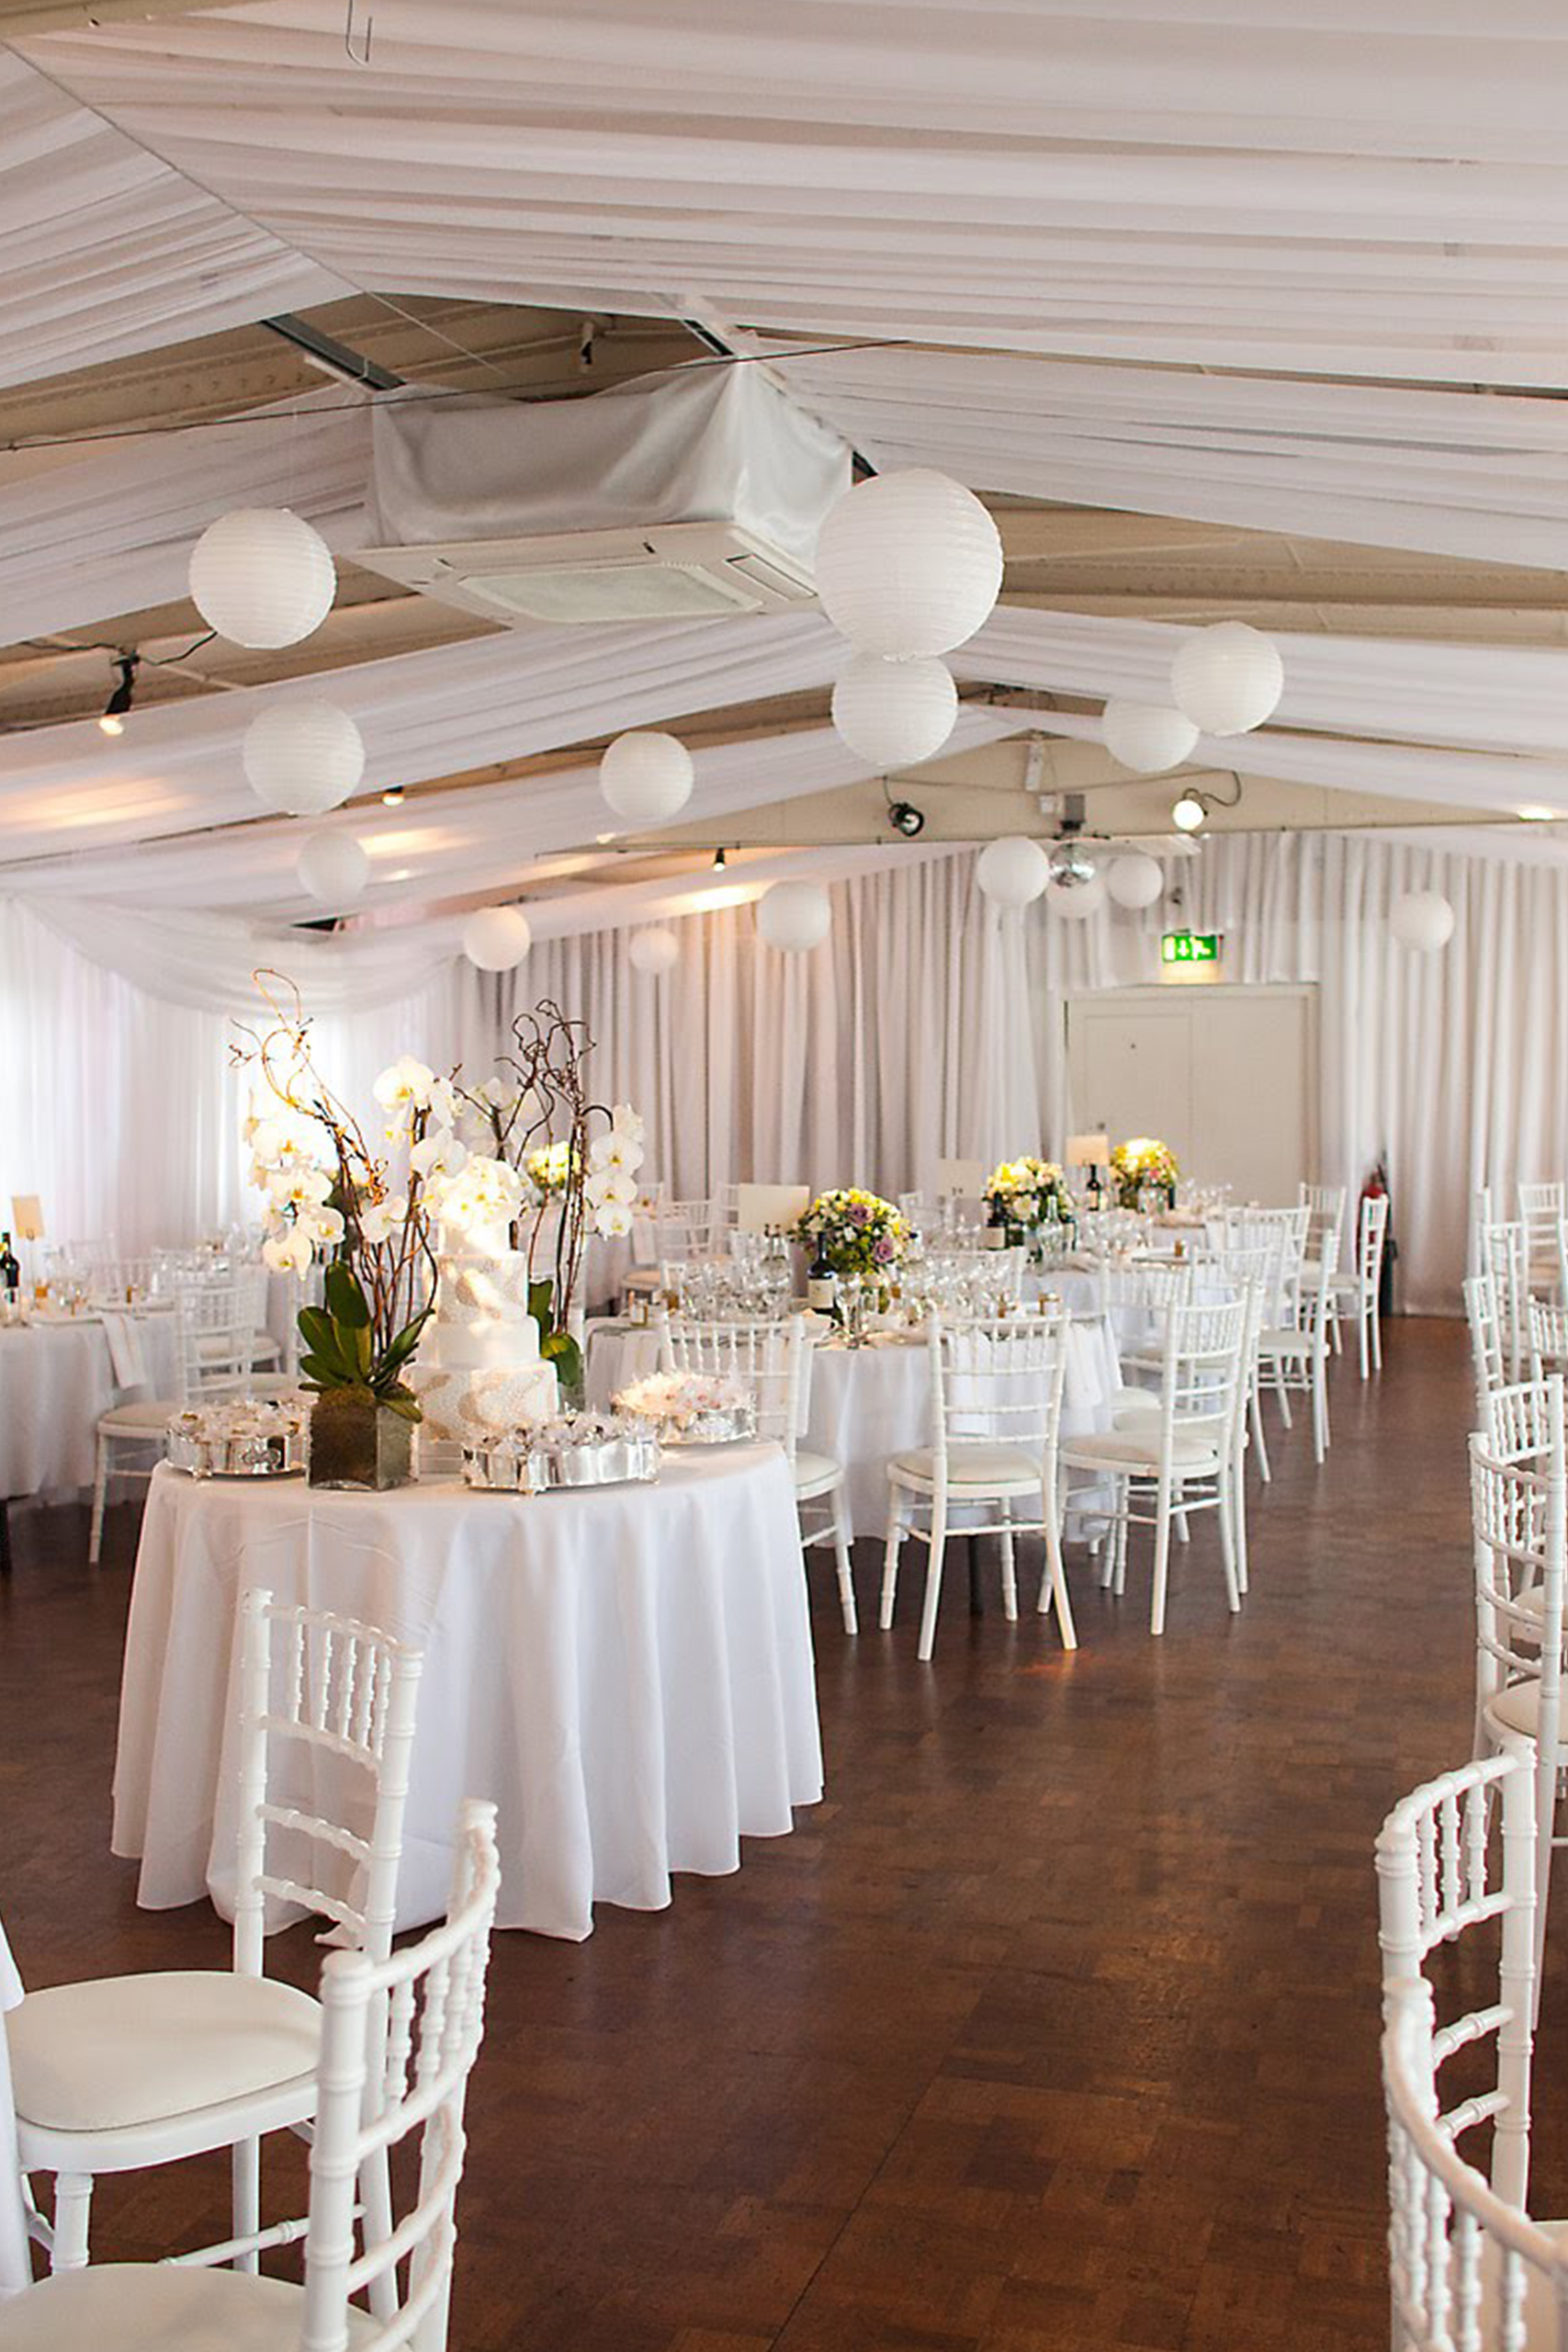 More Weddings wedding ceiling drapes with hanging paper lanterns